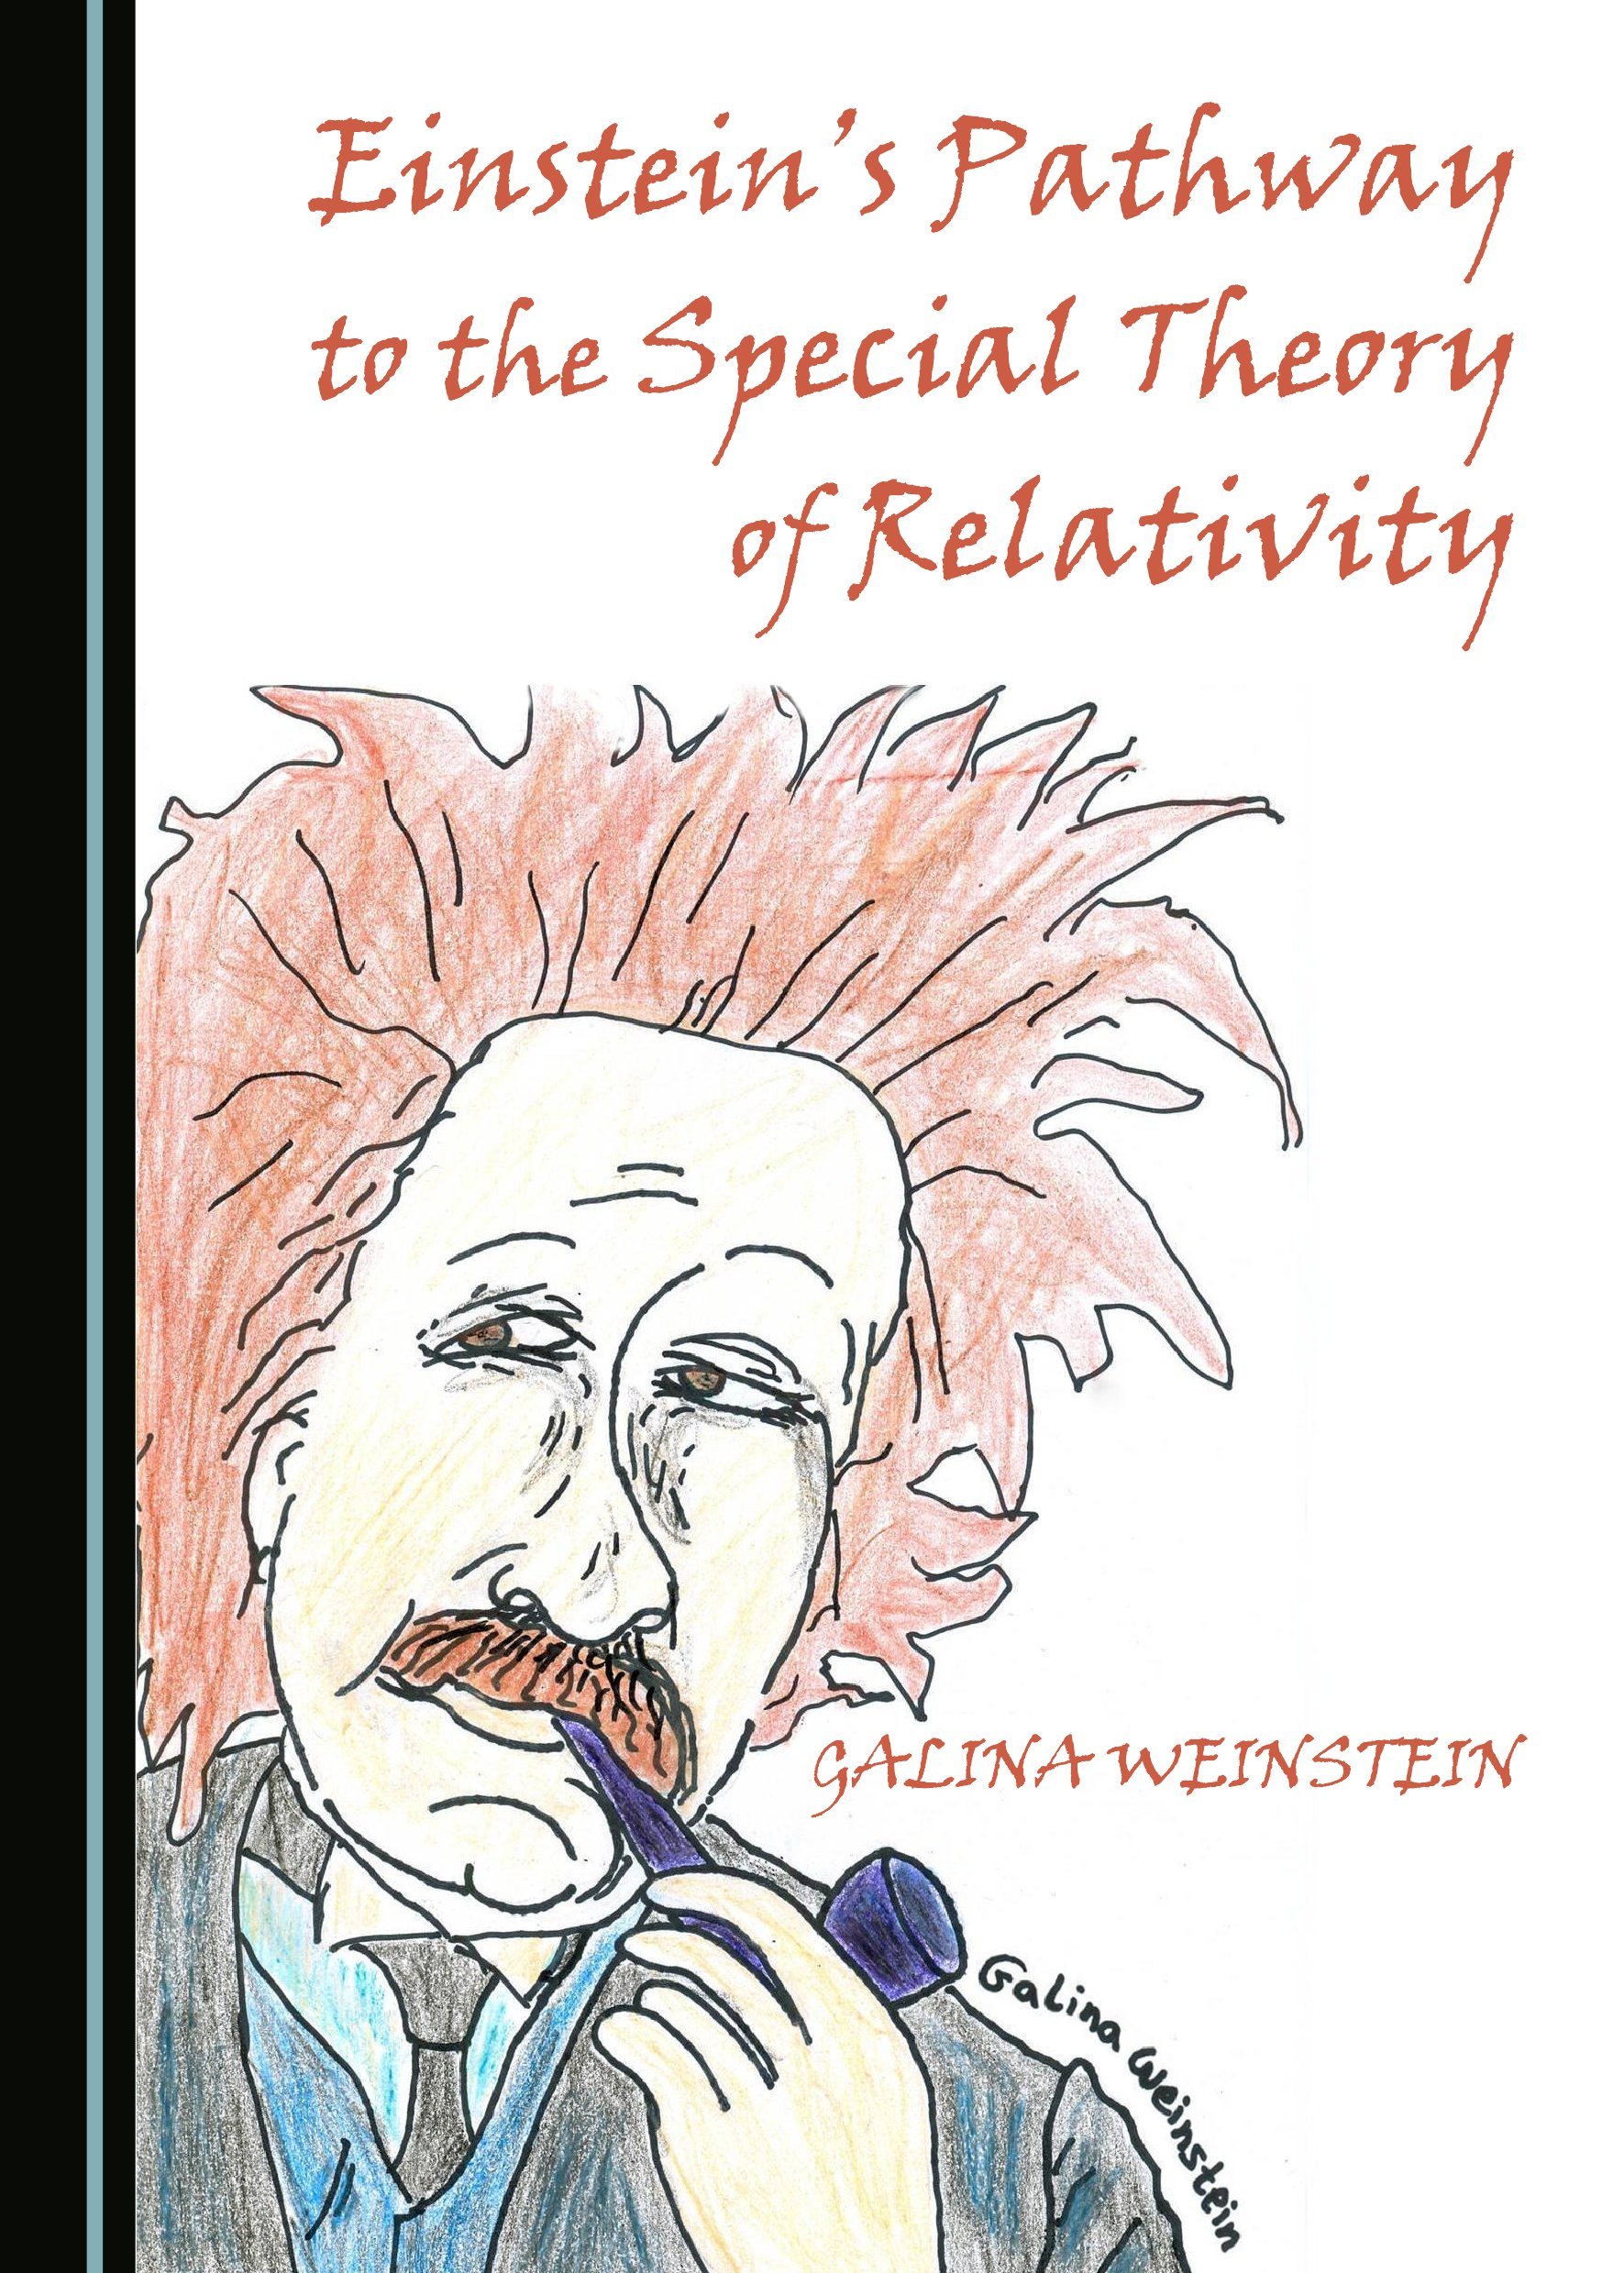 Einstein's Pathway to the Special Theory of Relativity